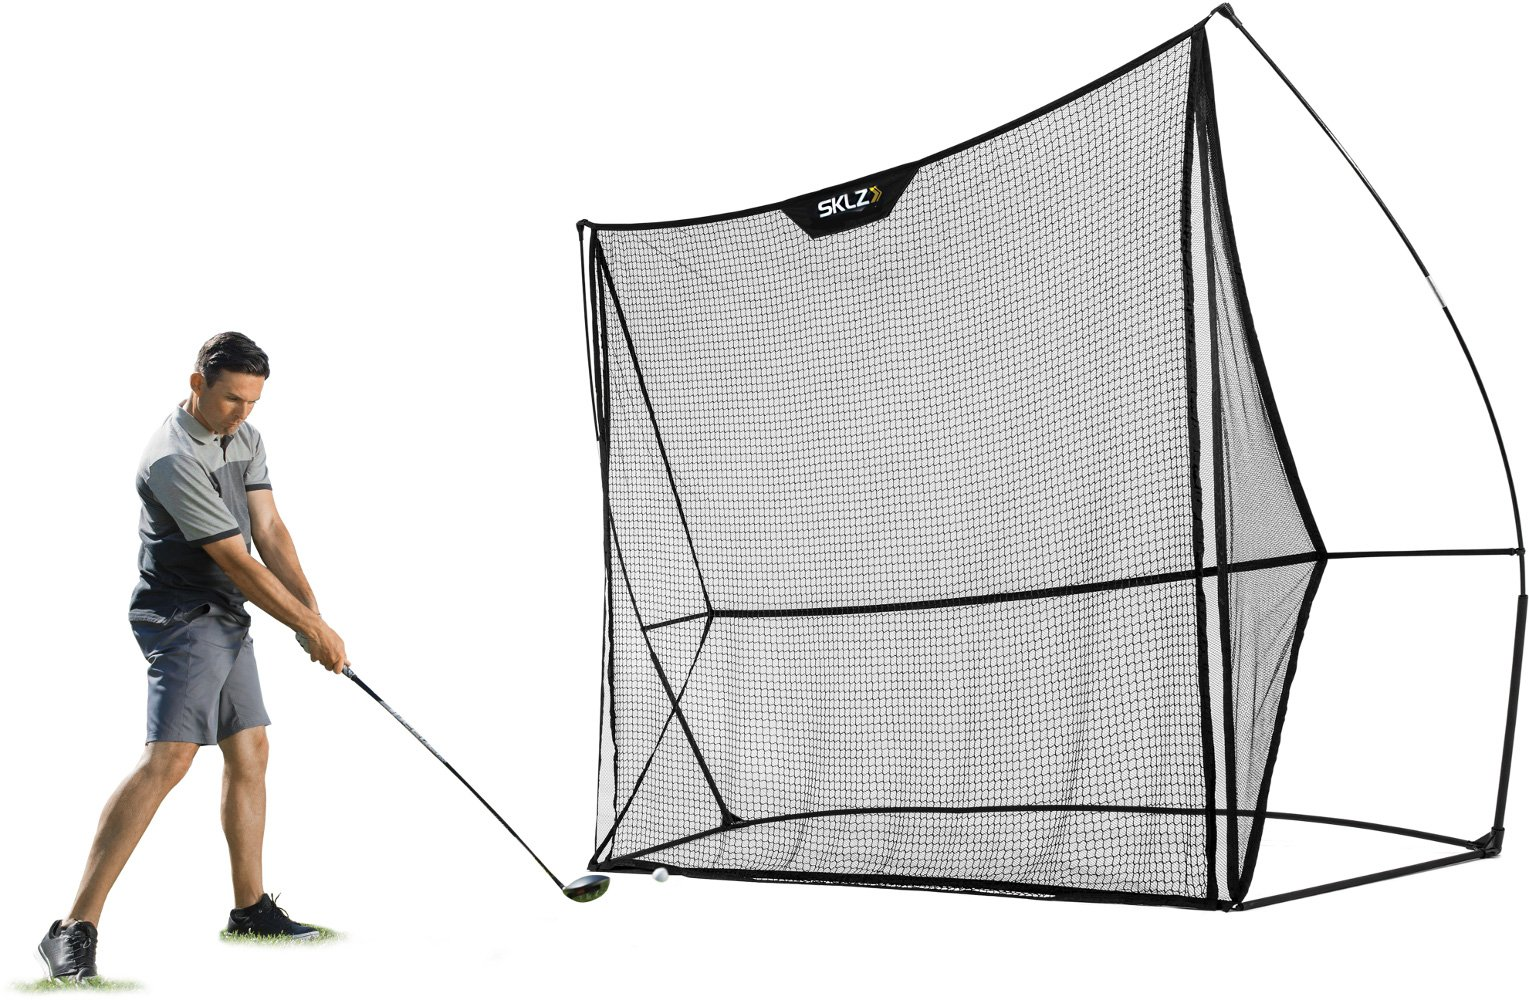 SKLZ Dual Net - 8.5' x 8.5' Premium and Durable Golf Training Net. by SKLZ (Image #1)